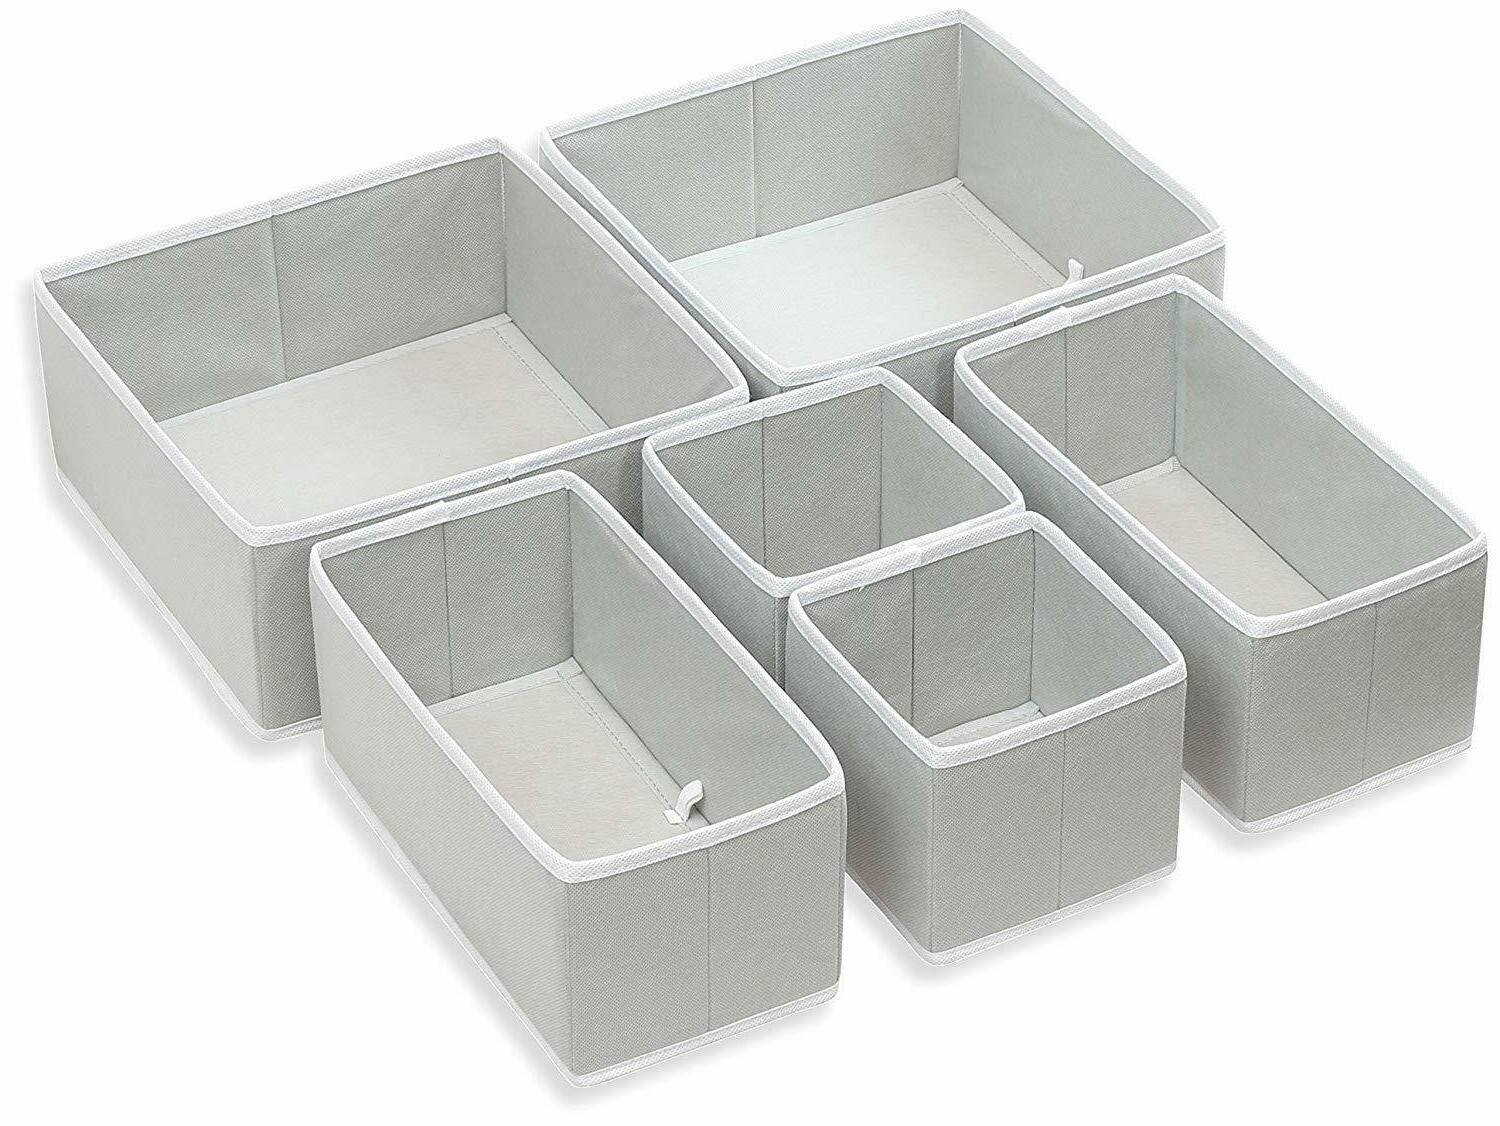 Foldable Closet Drawer Organizer Bins